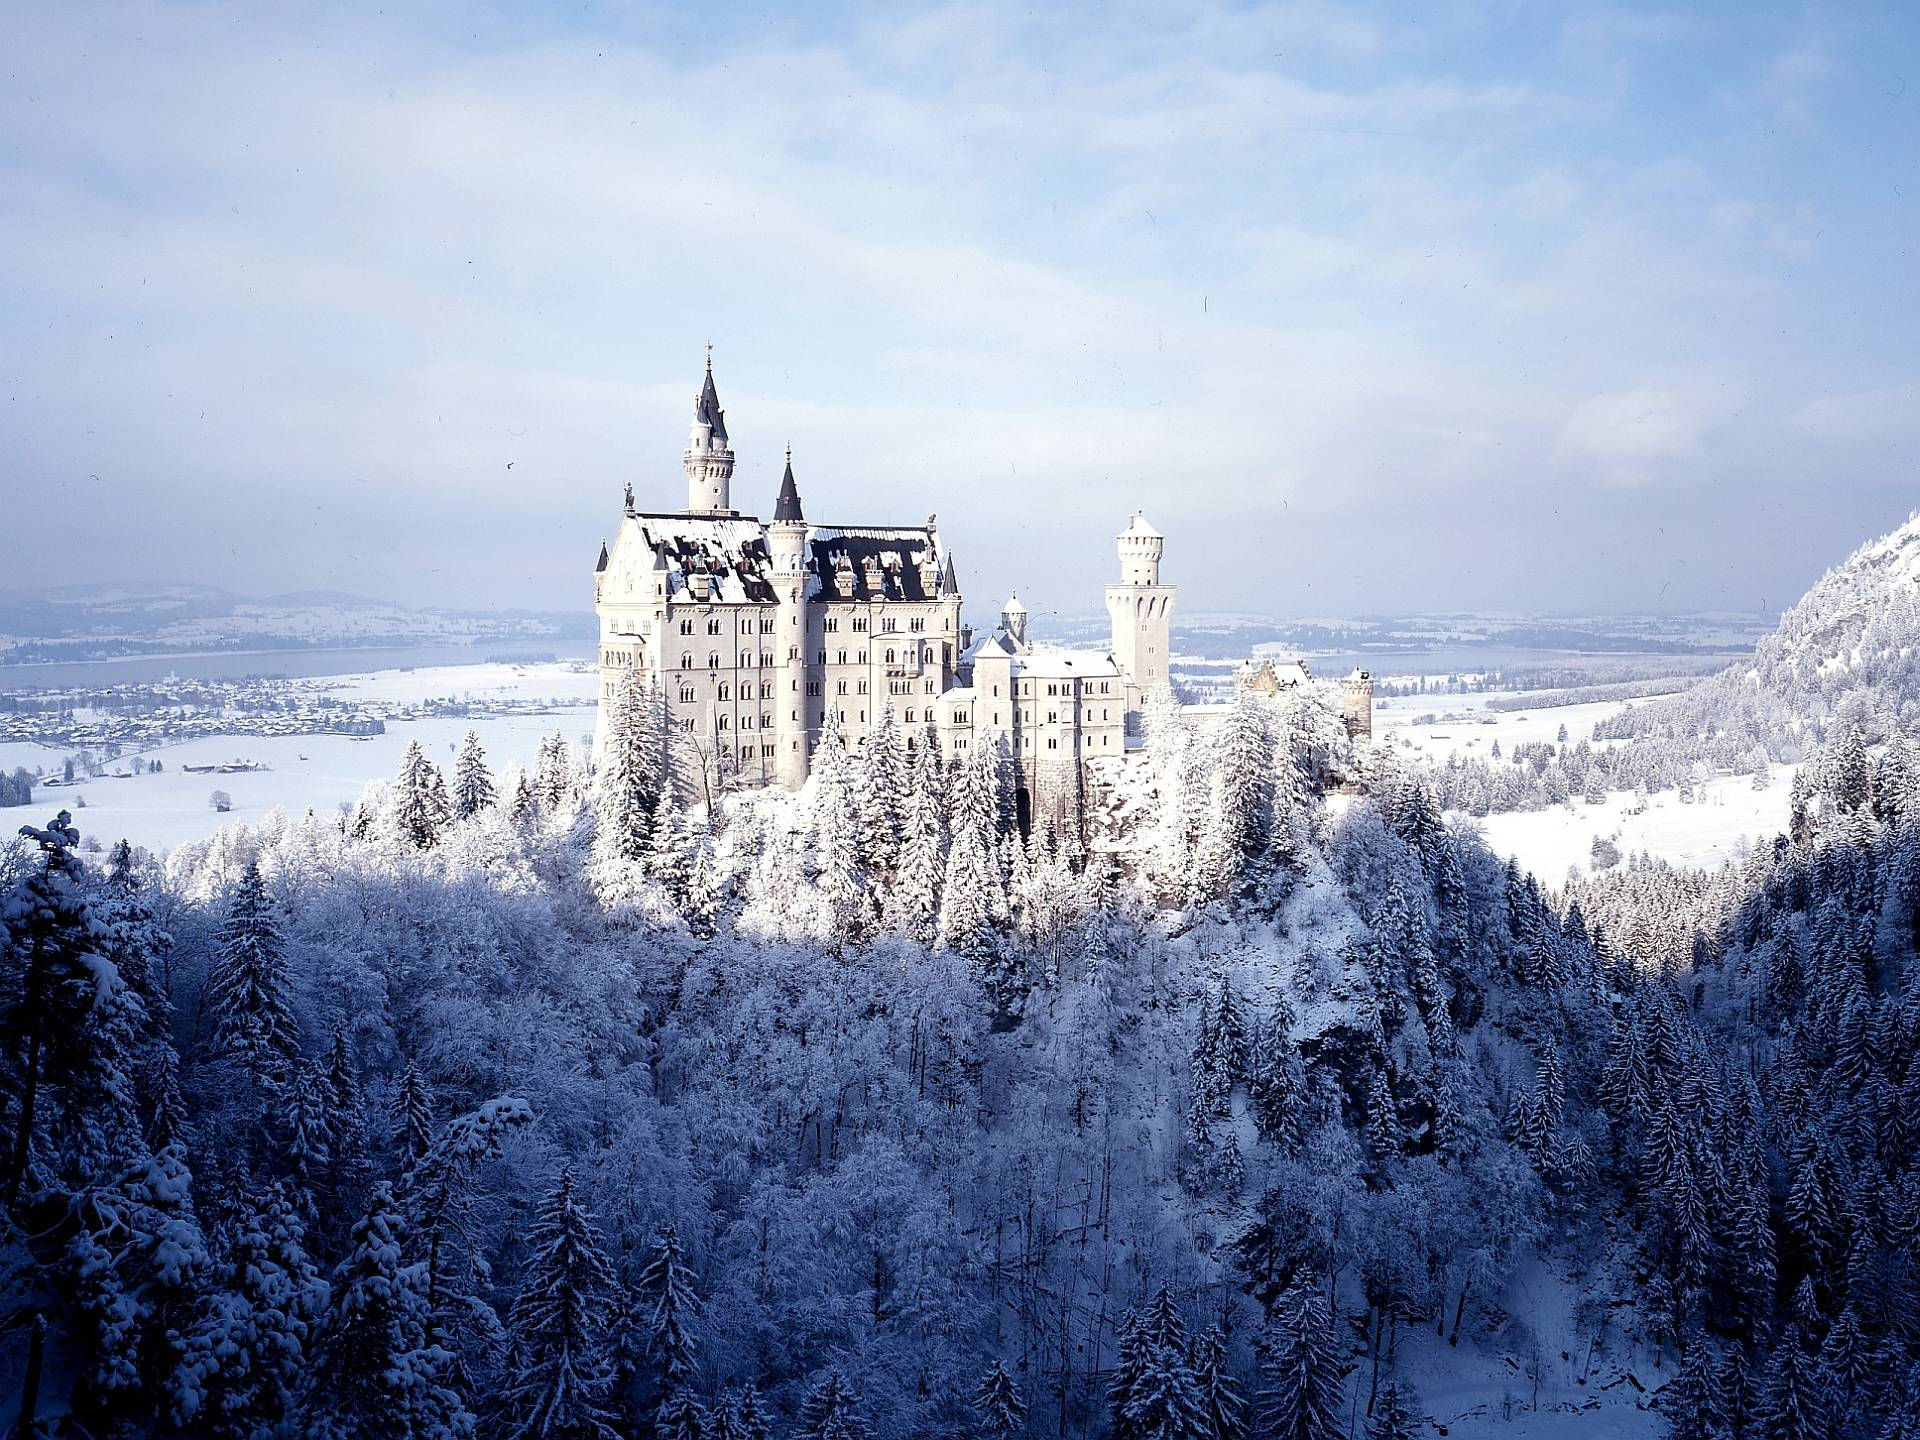 Neuschwanstein Castle Computer Wallpapers, Desktop Backgrounds ...